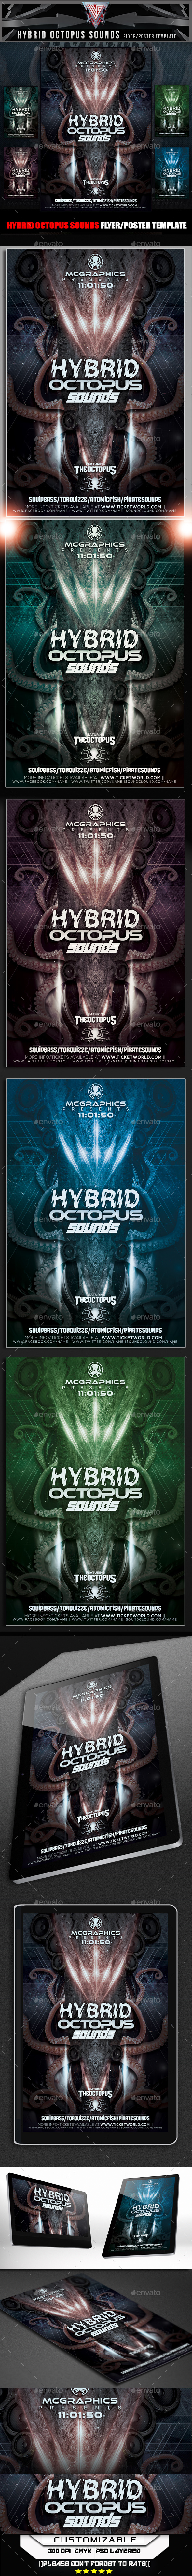 Hybrid Octopus Sounds Flyer Template - Flyers Print Templates